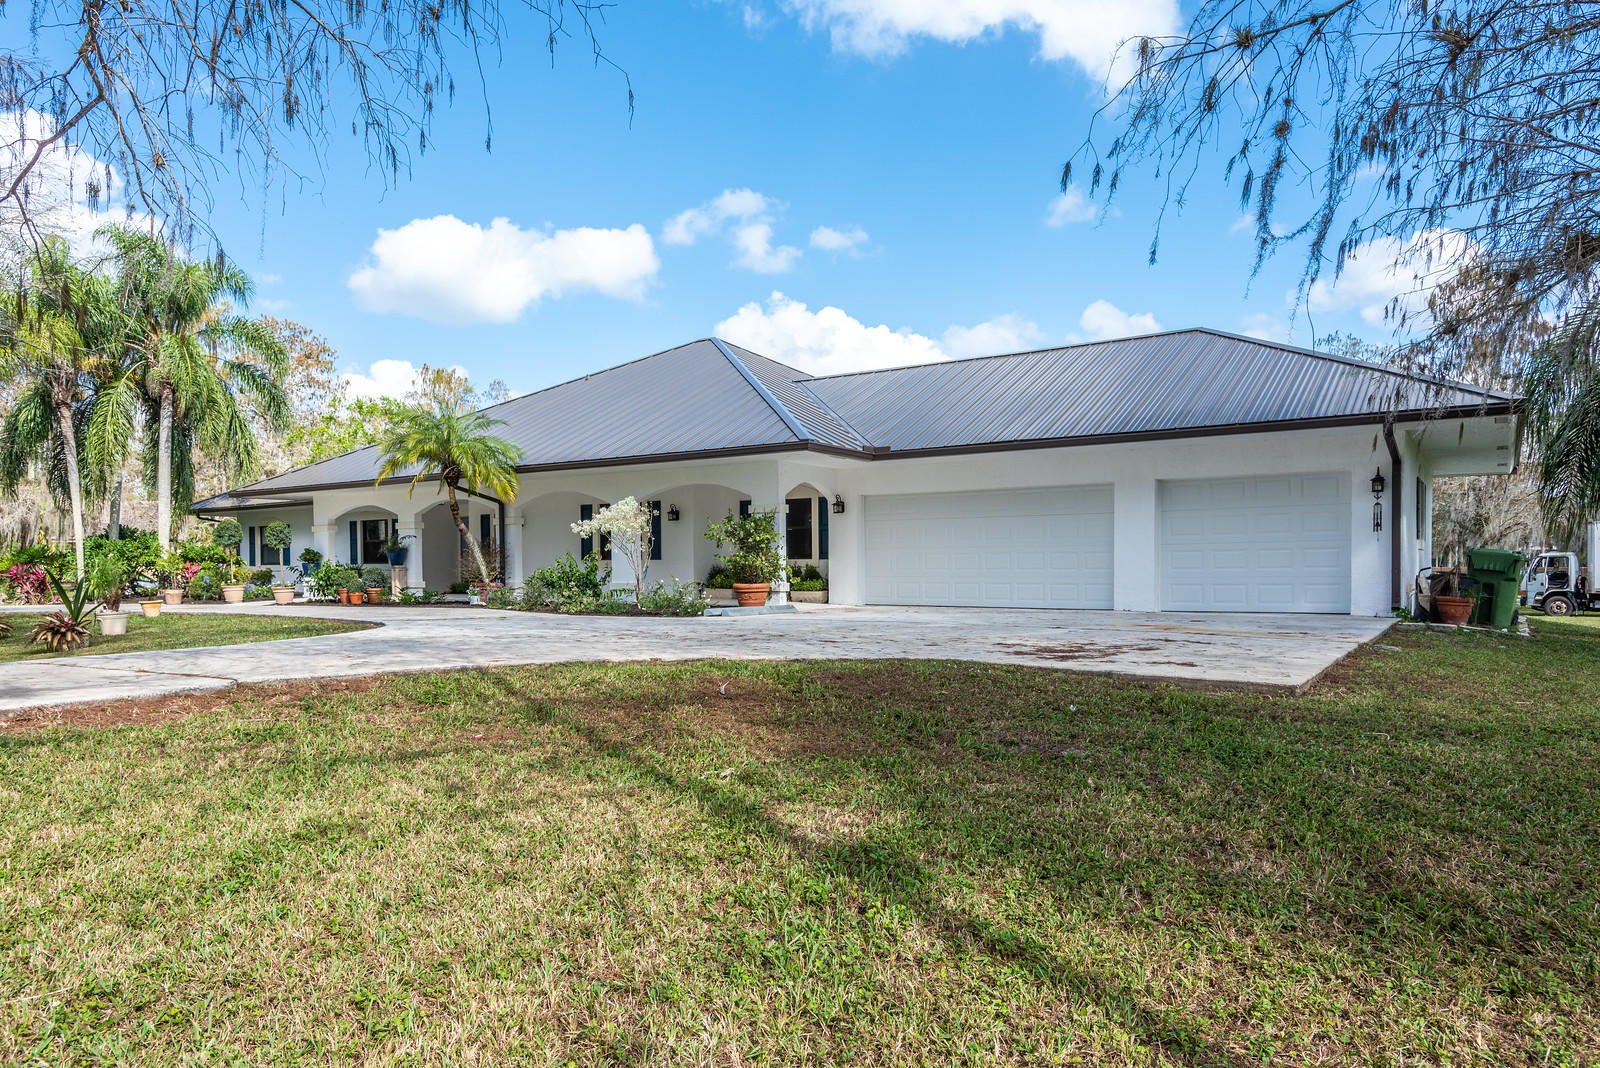 14902 Paddock Drive, Wellington, Florida 33414, 4 Bedrooms Bedrooms, ,3 BathroomsBathrooms,Single Family,For Rent,Paddock Park II,Paddock,RX-10652537